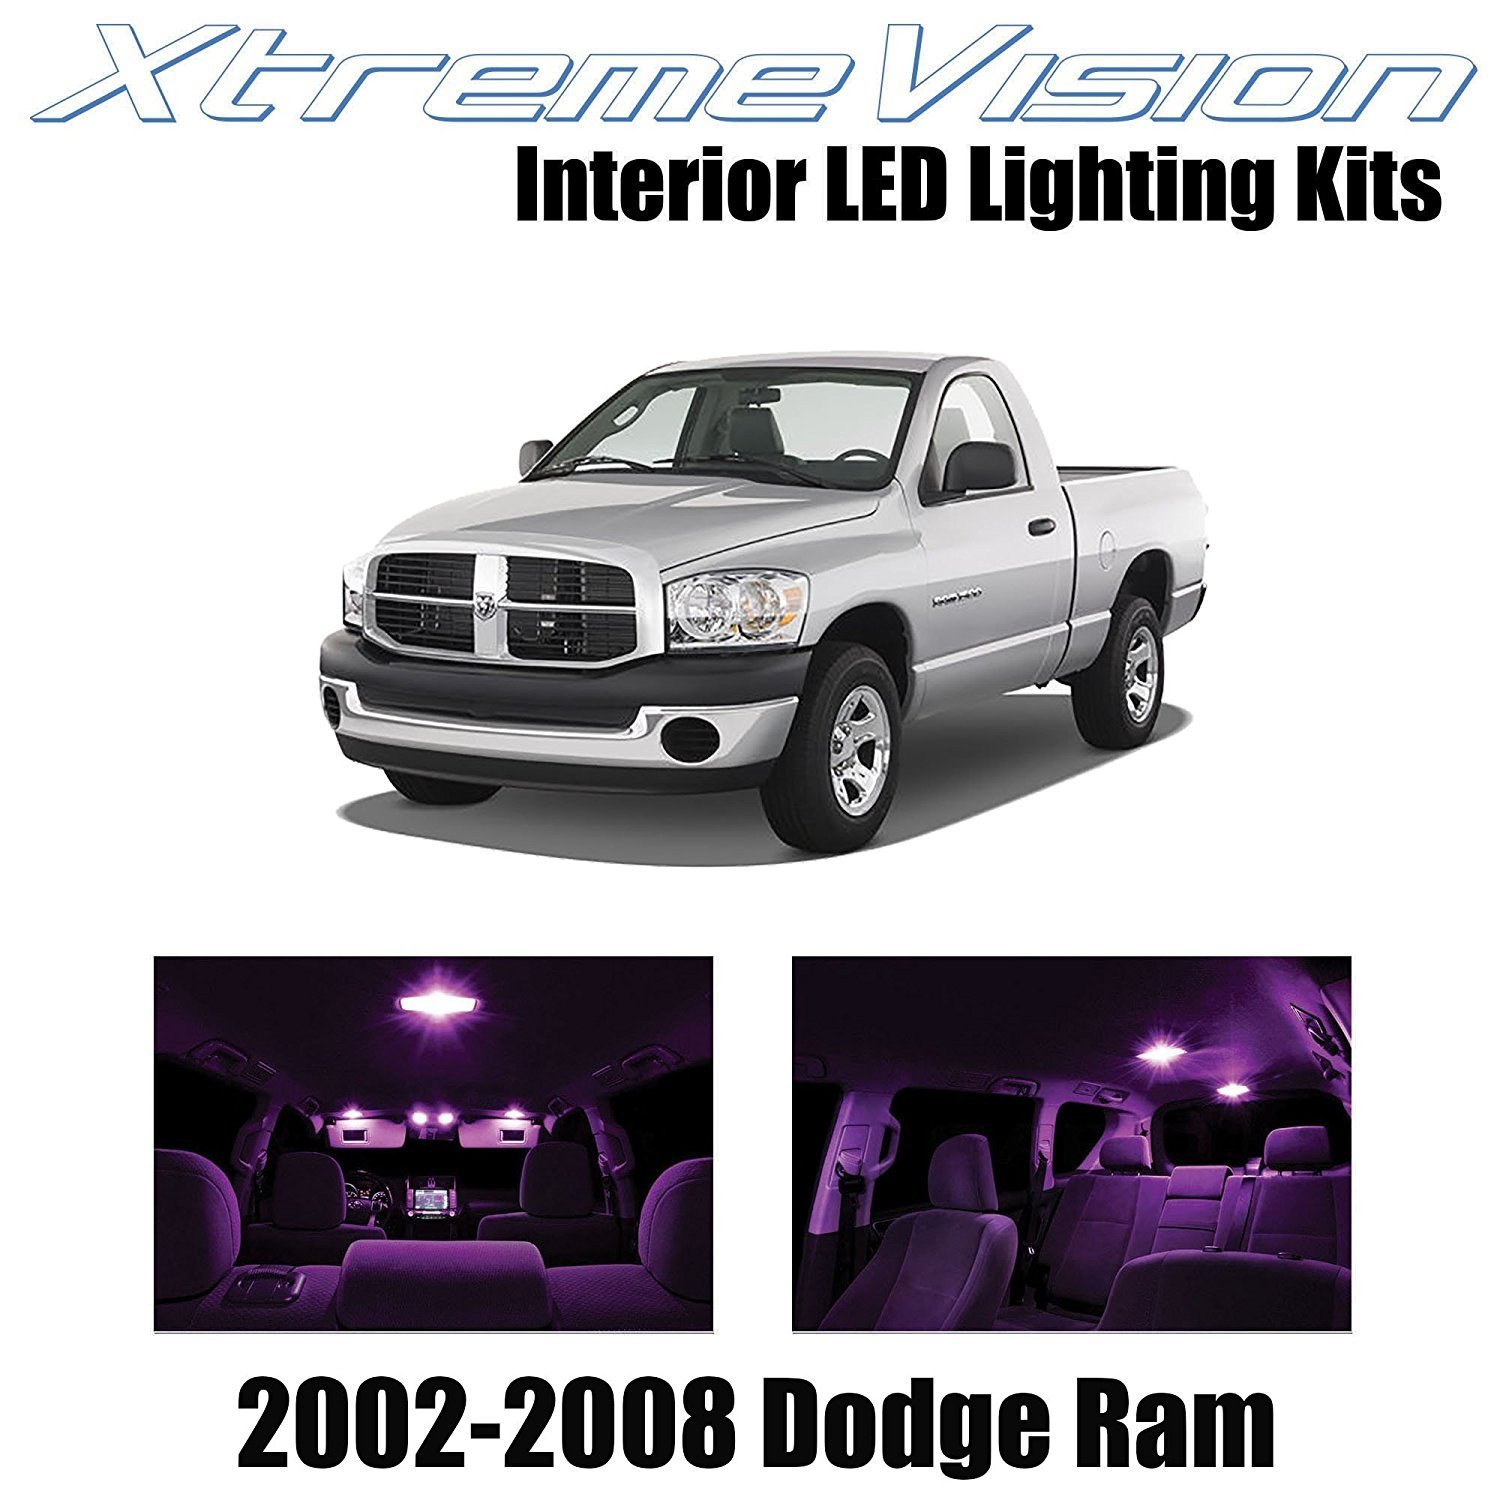 XtremeVision LED for Dodge Ram 2002-2008 (10 Pieces) Pink Premium Interior LED Kit Package + Installation Tool